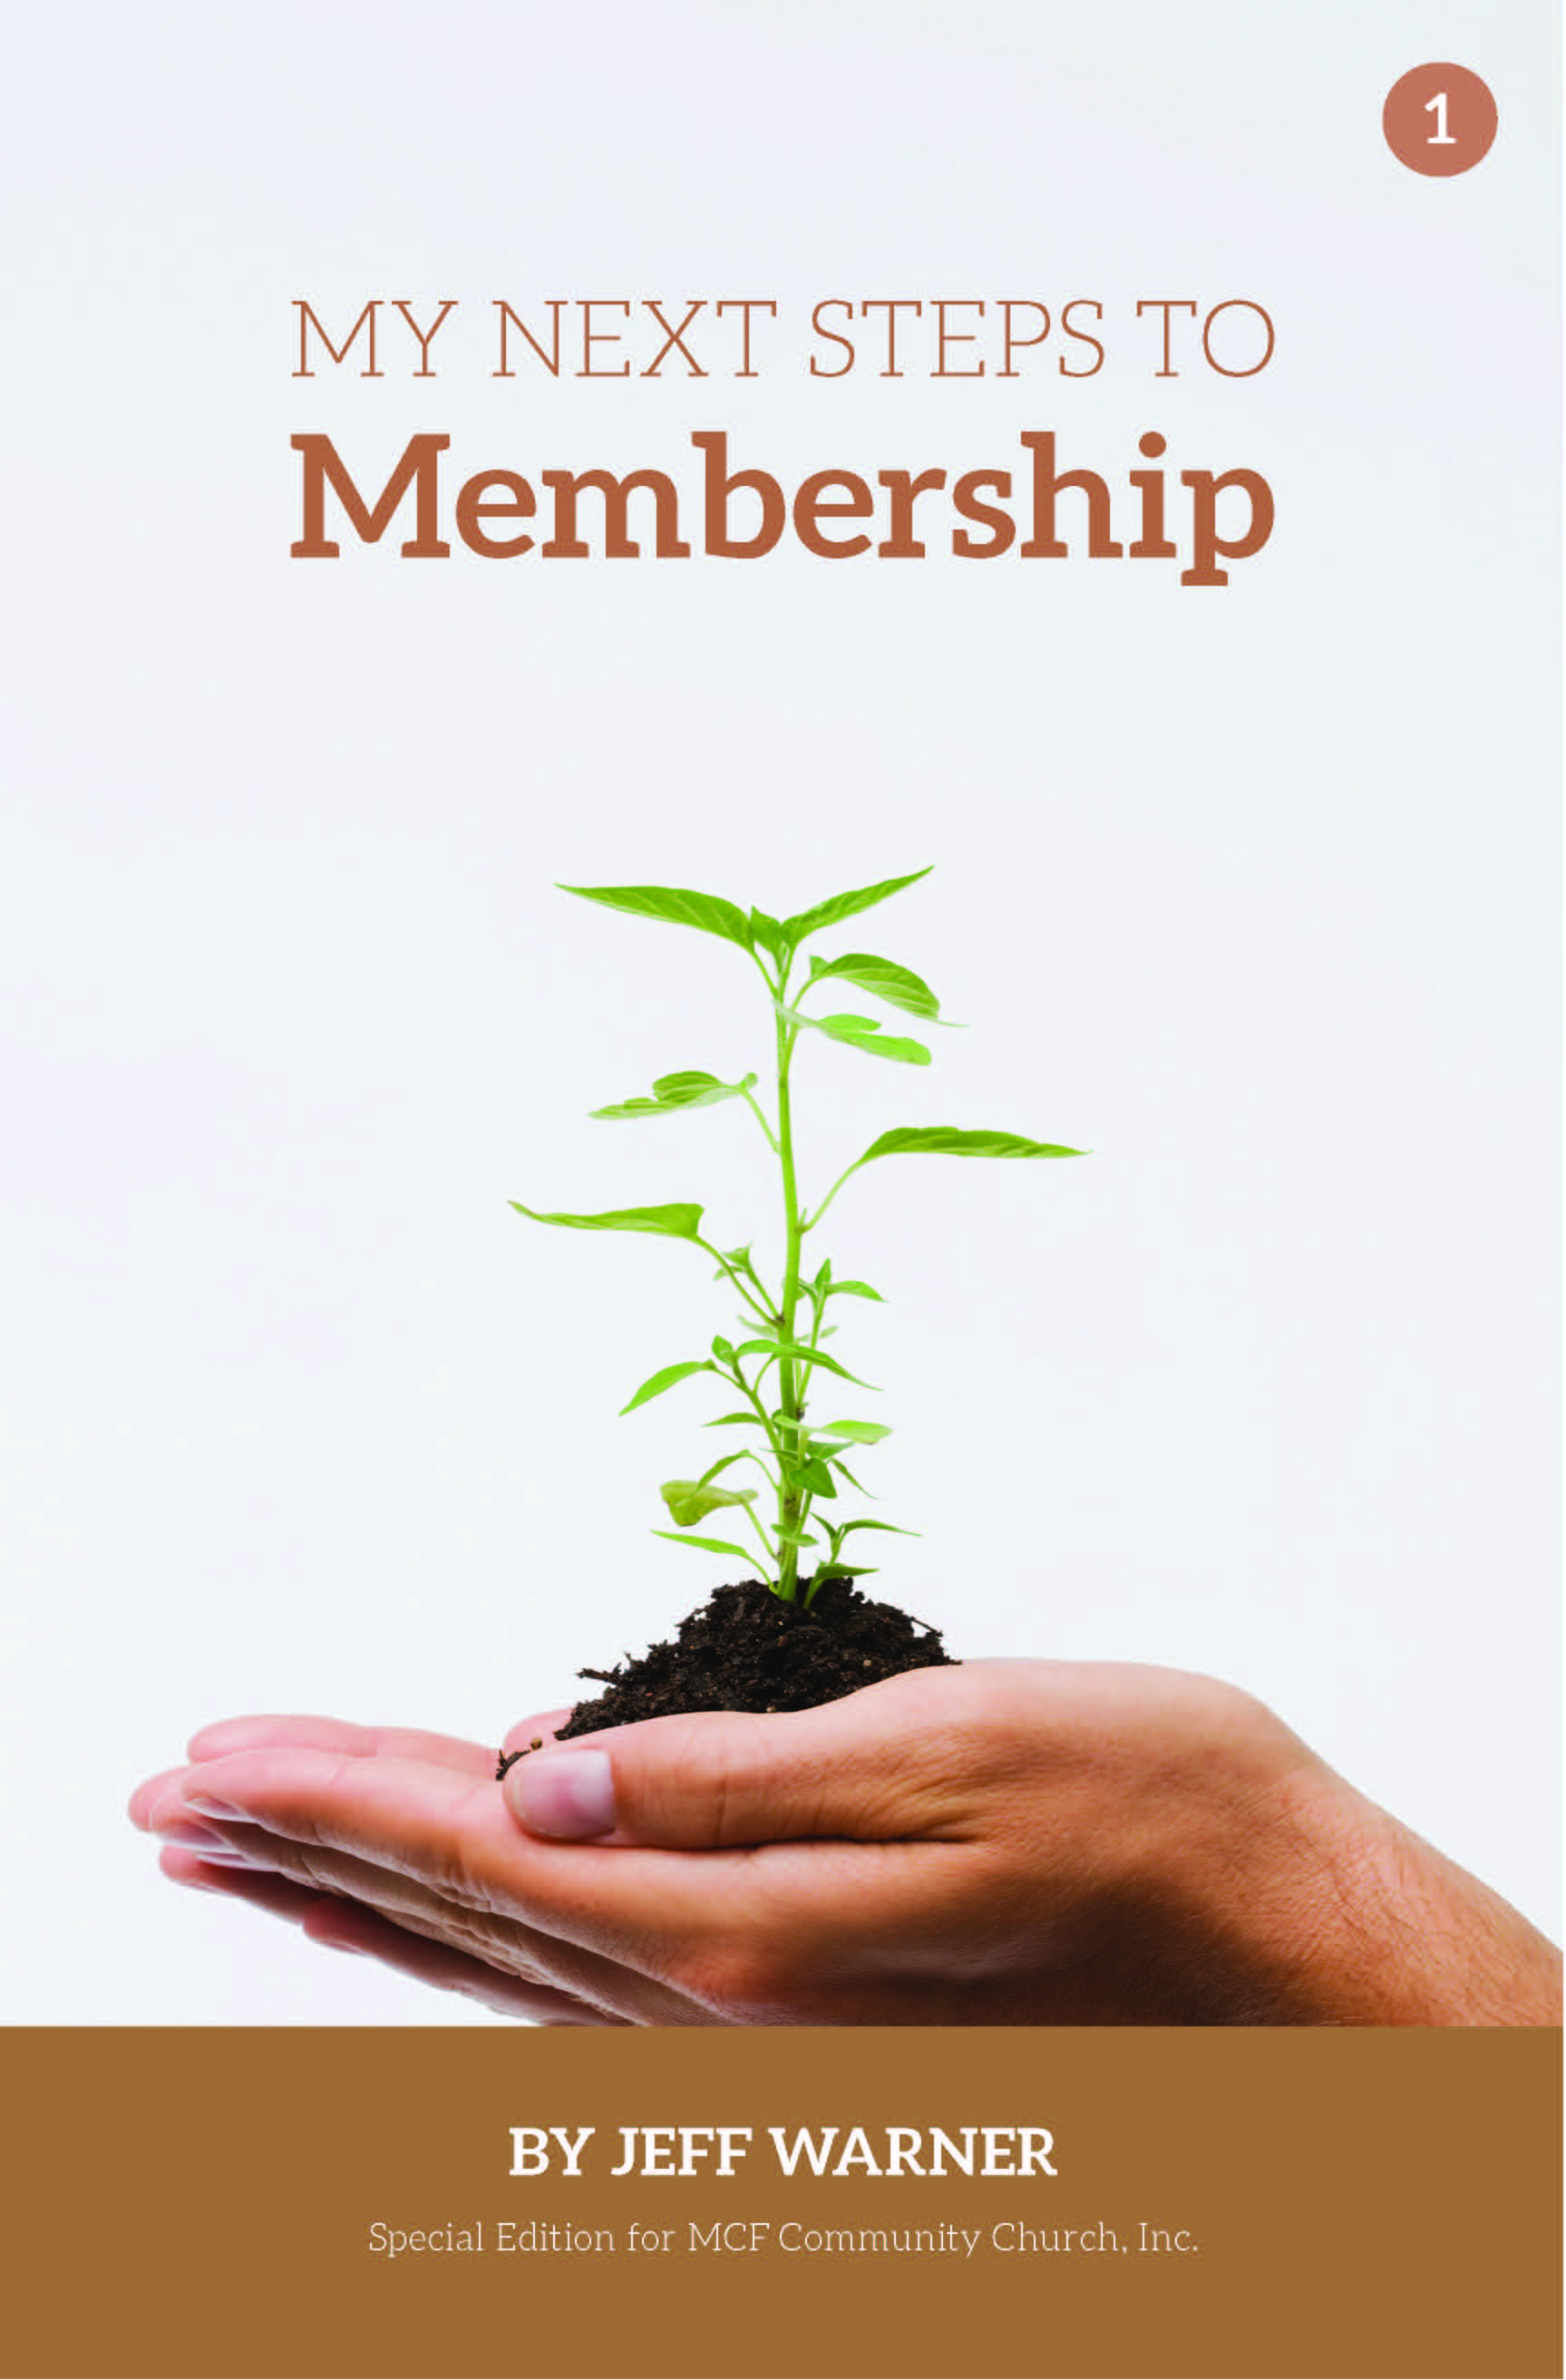 1-Membership Cover-6Aug14.jpg